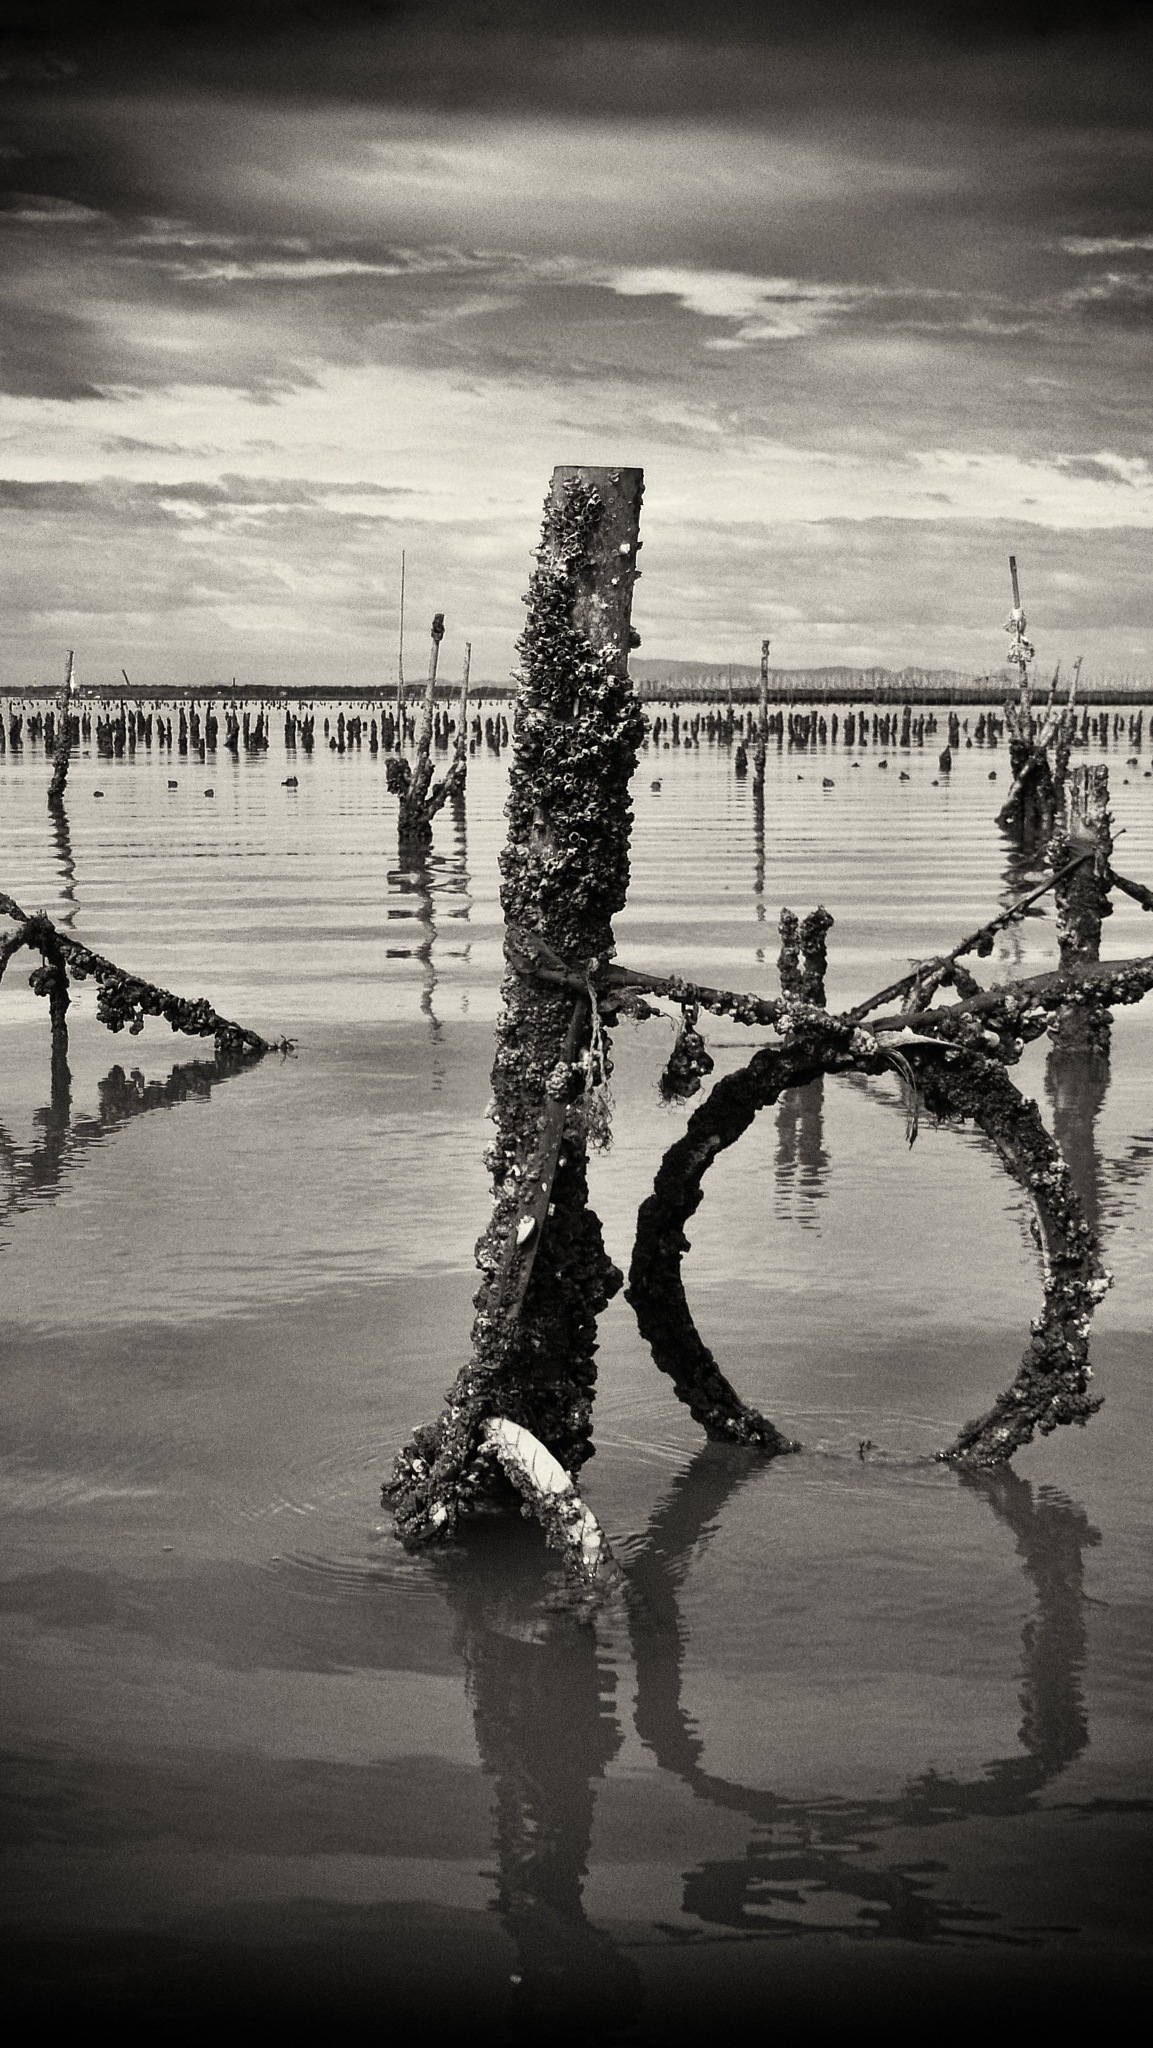 Oyster lease, Thailand by TonyG